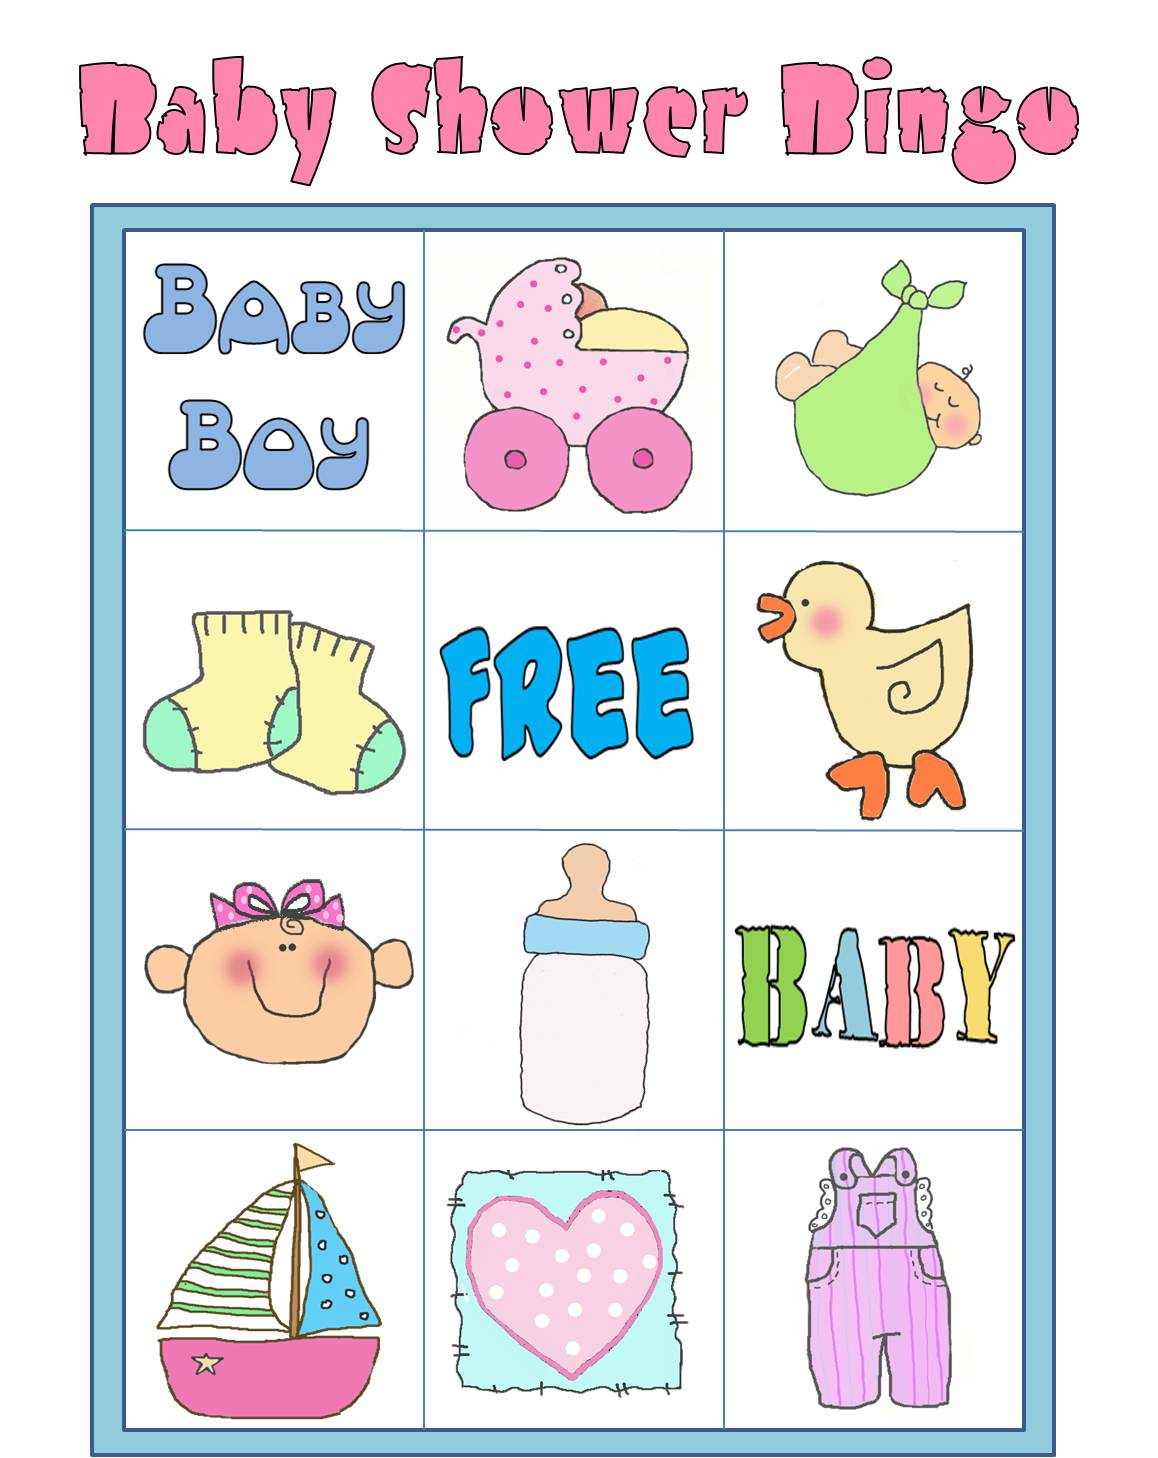 Parties And Patterns Printable Games Baby Shower Bingo